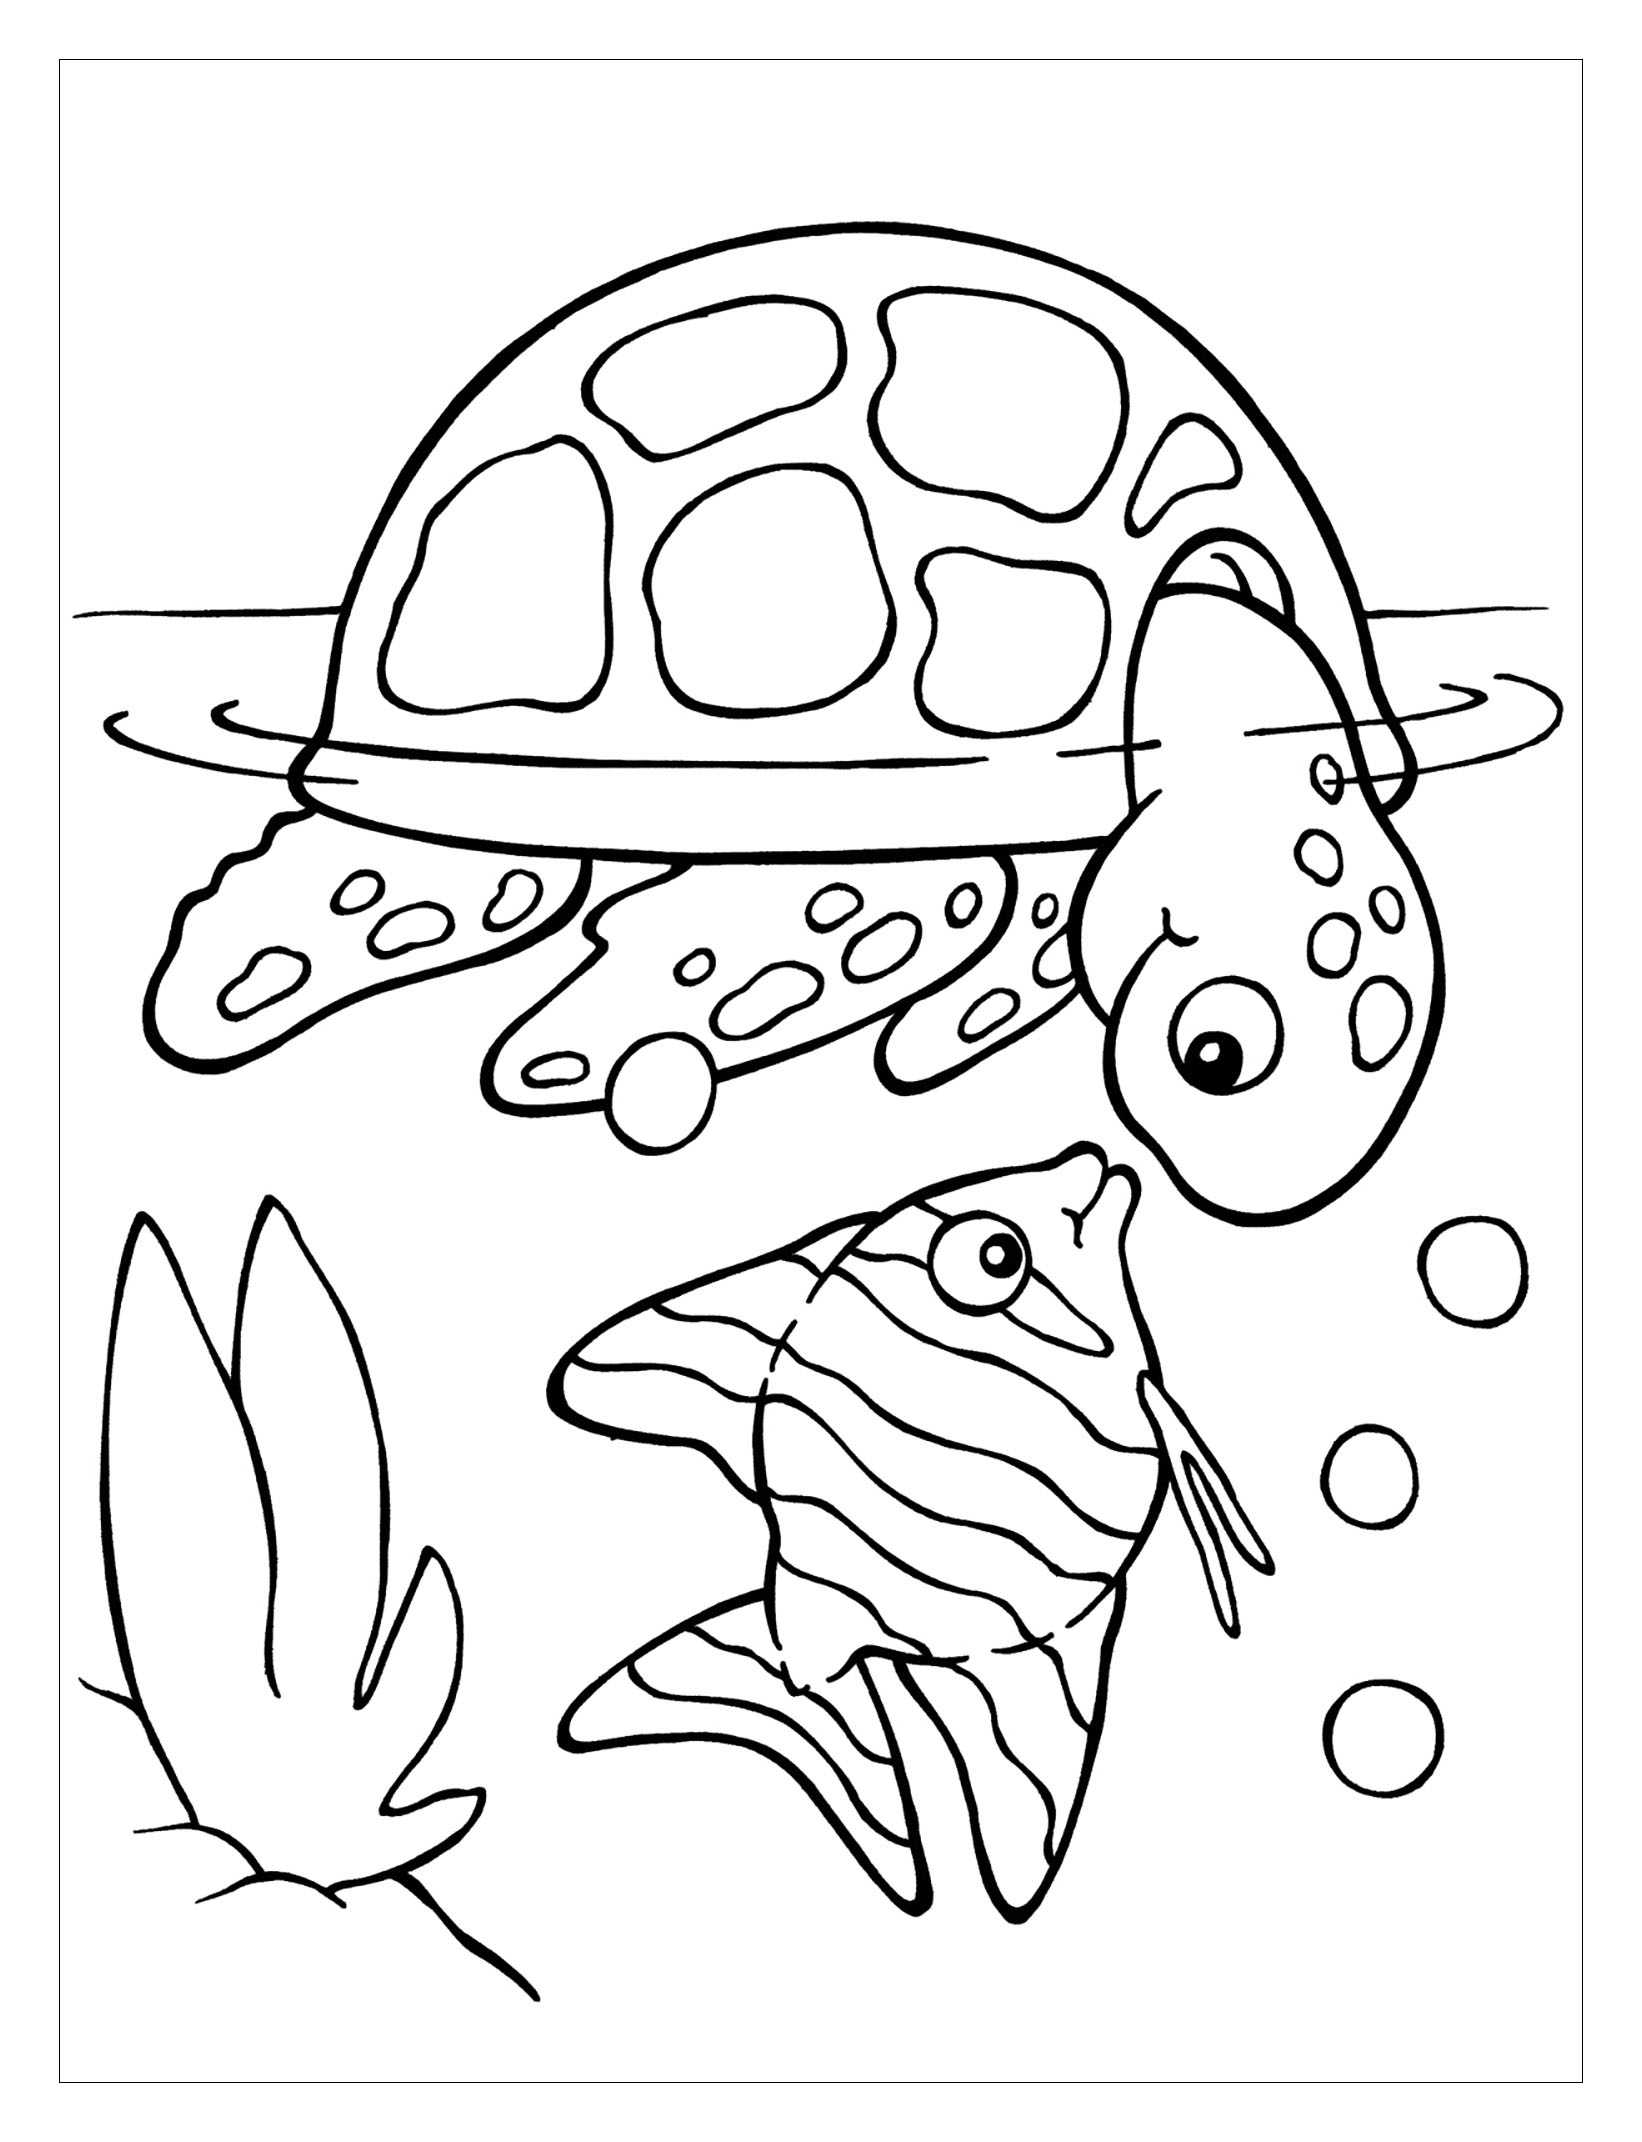 Turtles to print - Turtles Kids Coloring Pages